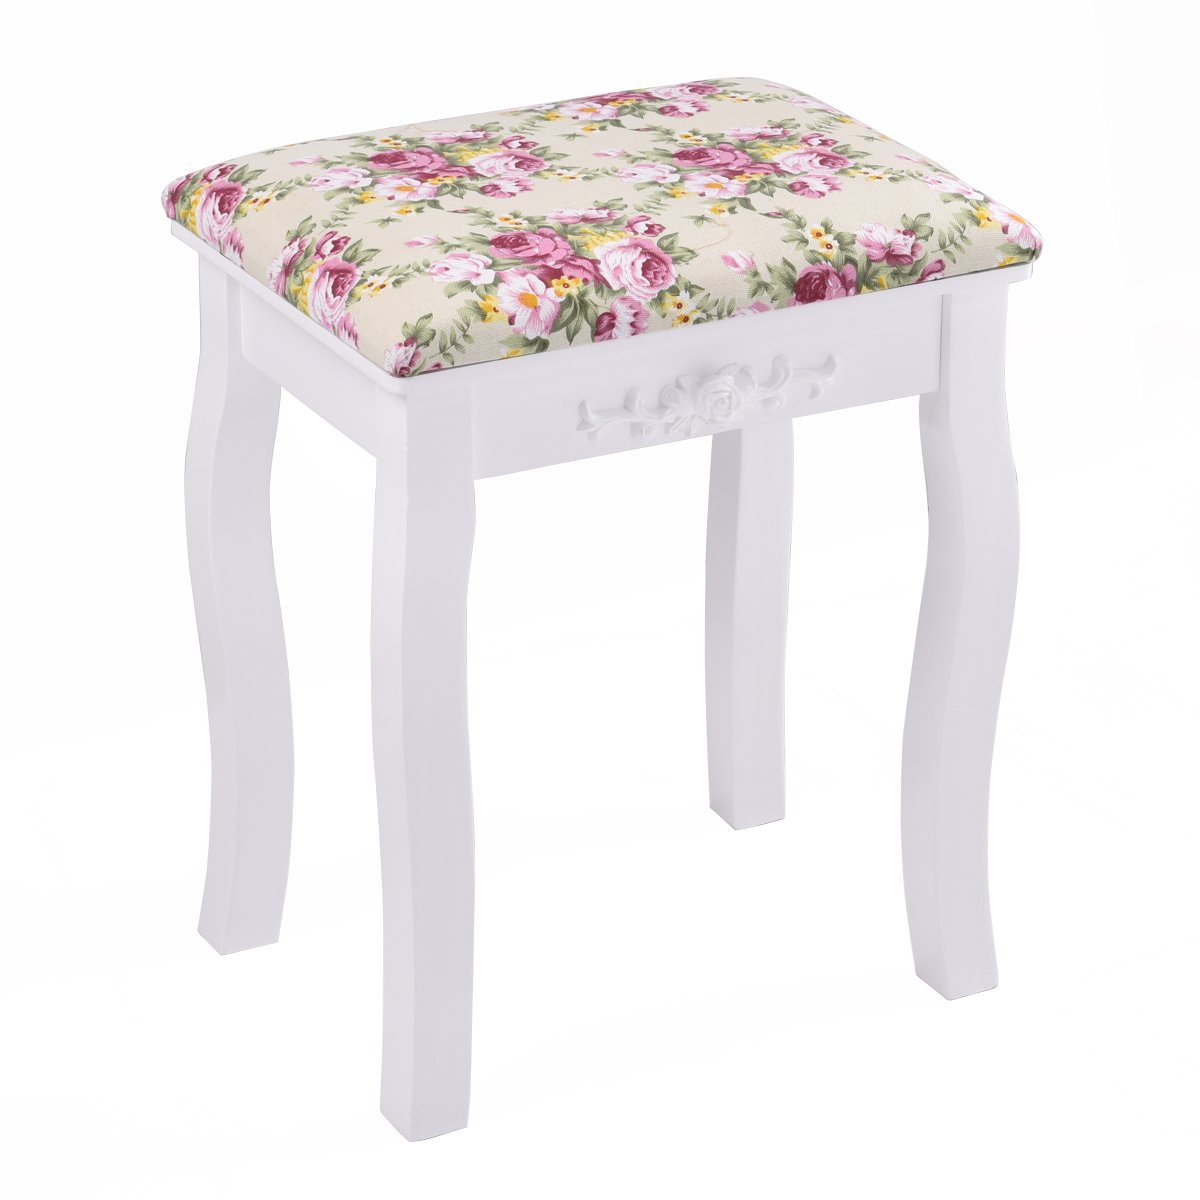 Giantex Vanity Stool Wood Dressing Padded Chair Makeup Piano Seat Make Up Bench w/Rose Cushion (White) by Giantex